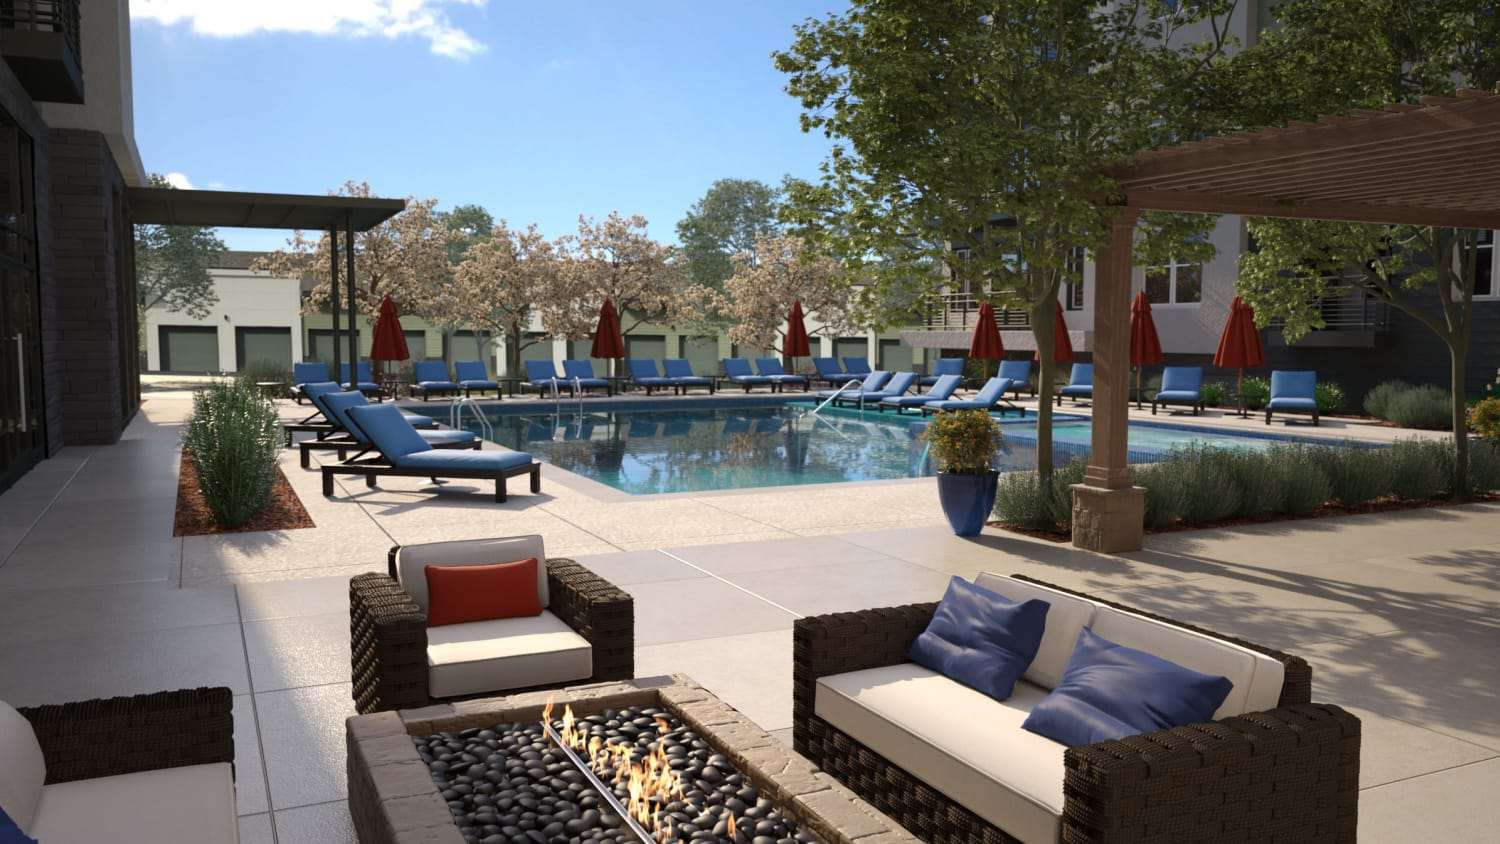 Pool & sundeck at Avenida Lakewood senior living apartments in Lakewood, Colorado